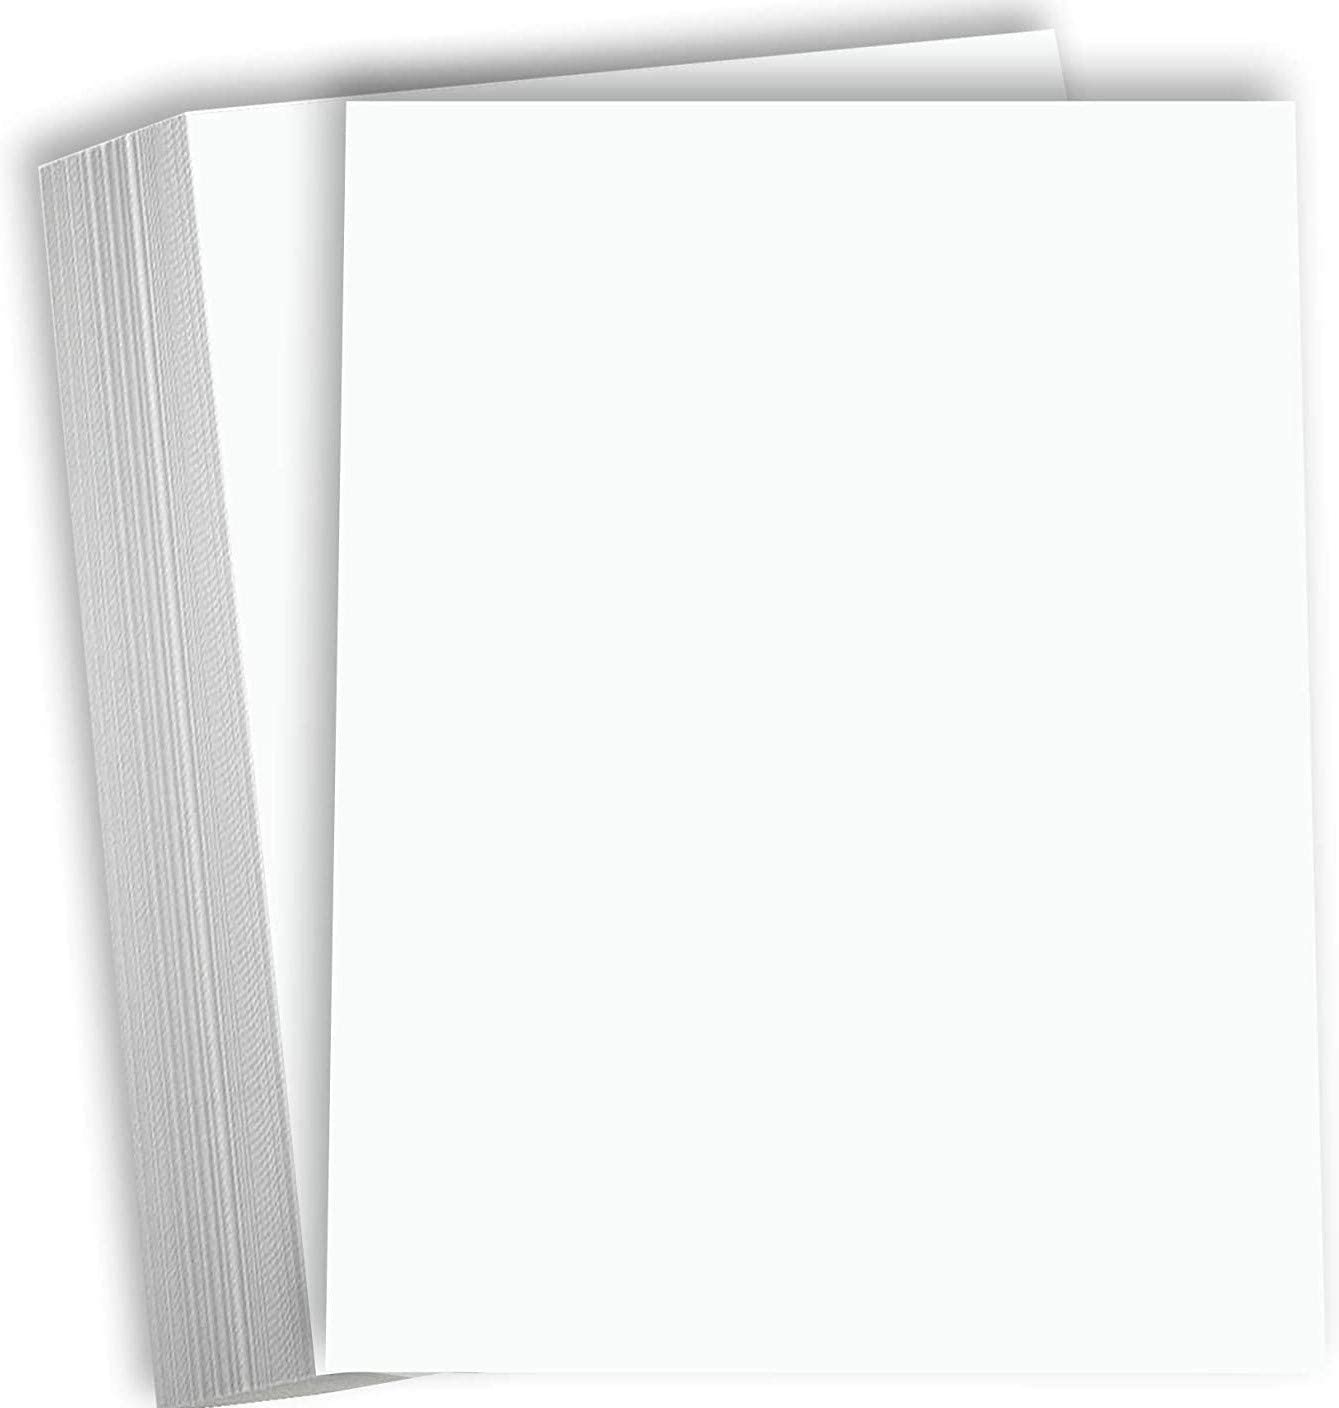 """Hamilco White Cardstock Thick Paper 8 1/2 x 11"""" Blank Heavy Weight 80 lb Cover Card Stock - 100 Pack"""